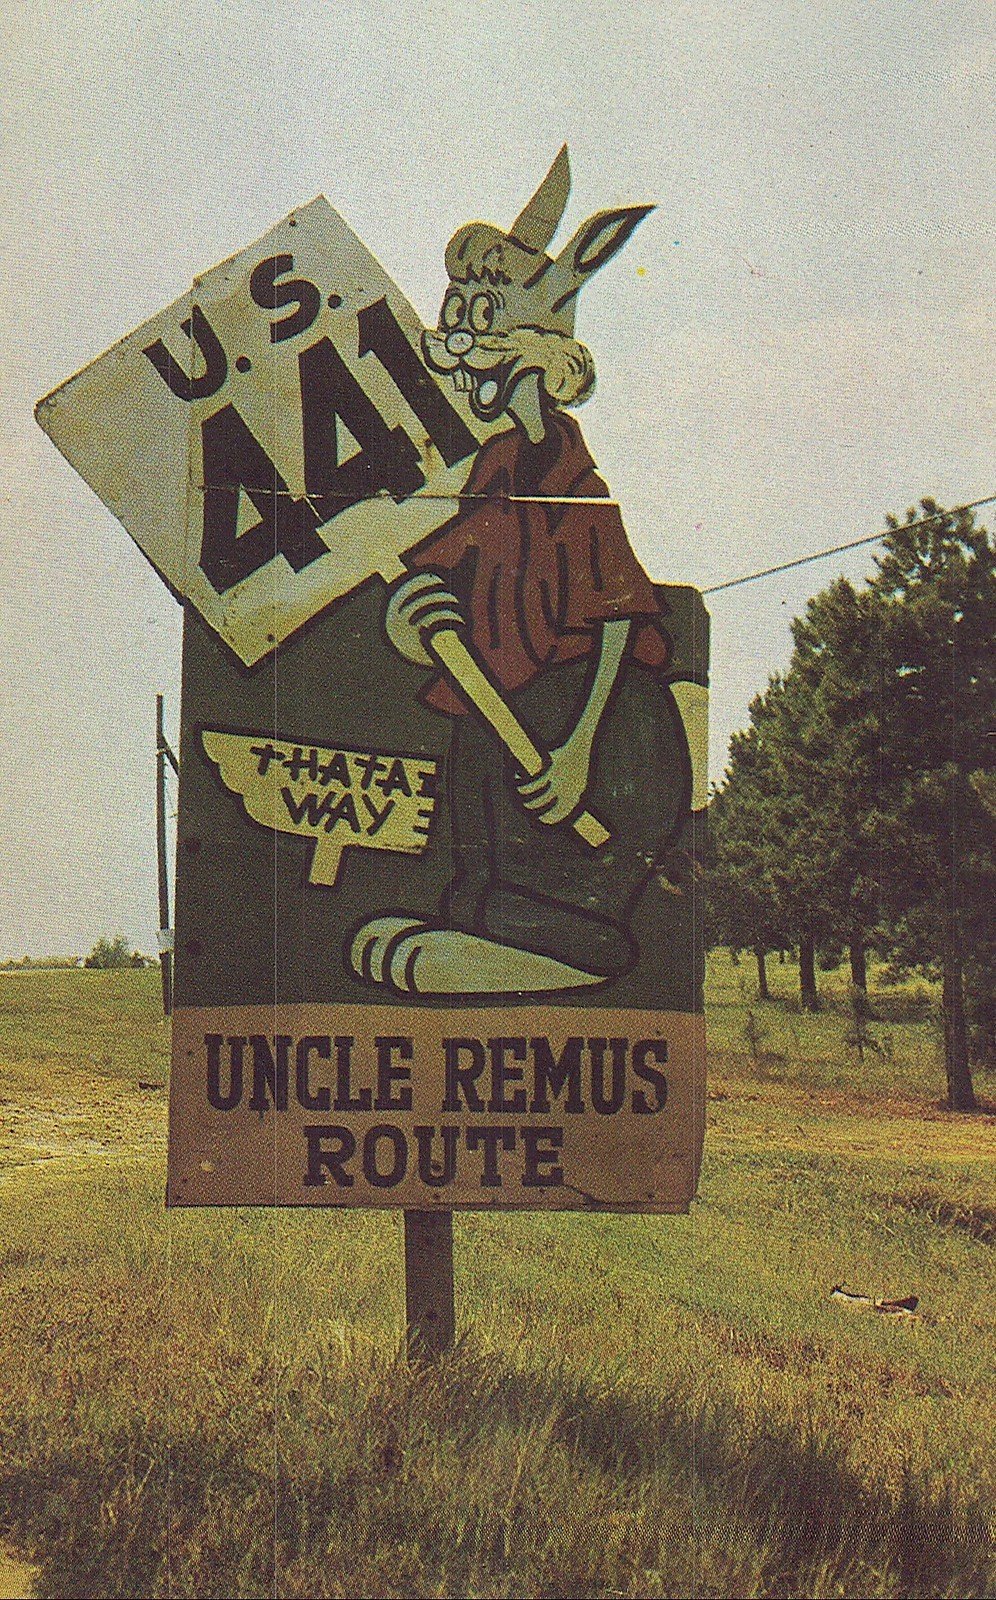 the uncle remus highway